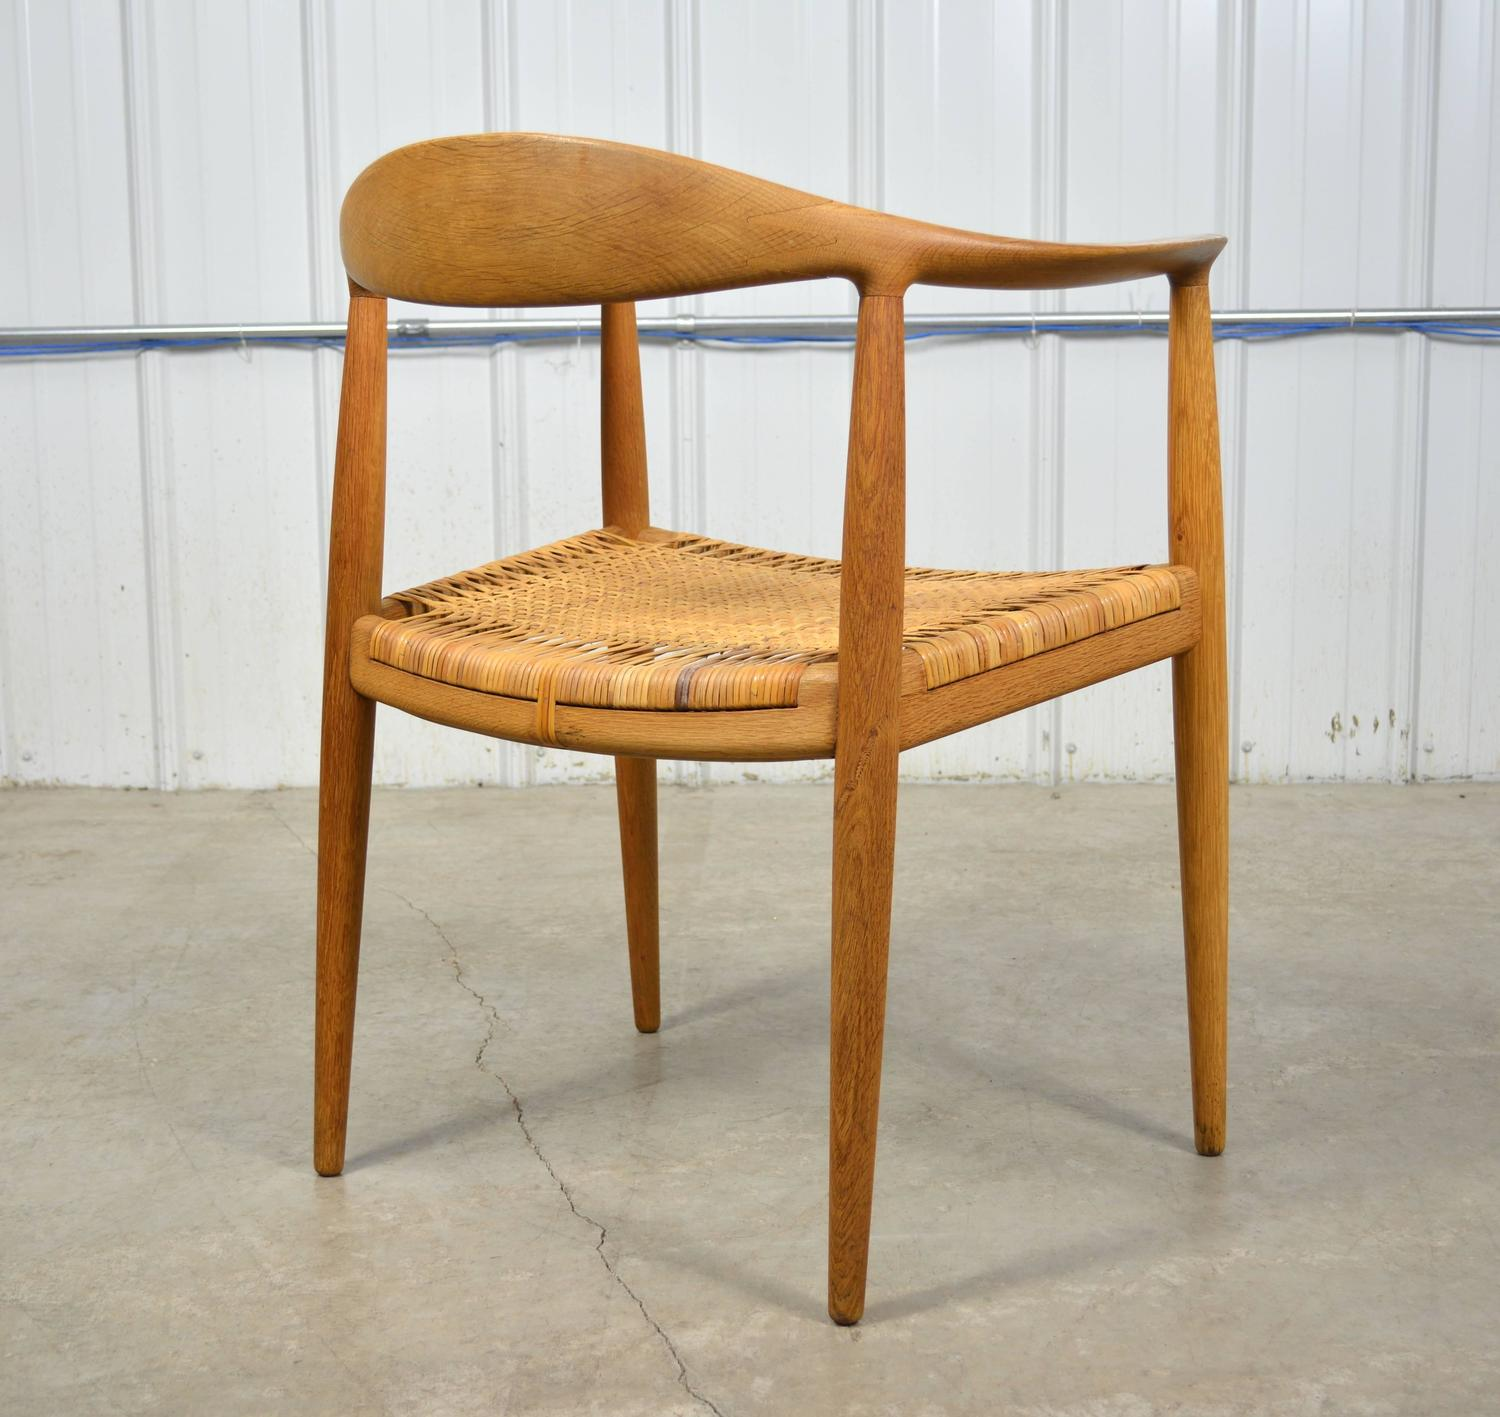 Hans Wegner Round Chair In Oak And Cane At 1stdibs. Full resolution  image, nominally Width 1500 Height 1417 pixels, image with #4B270B.